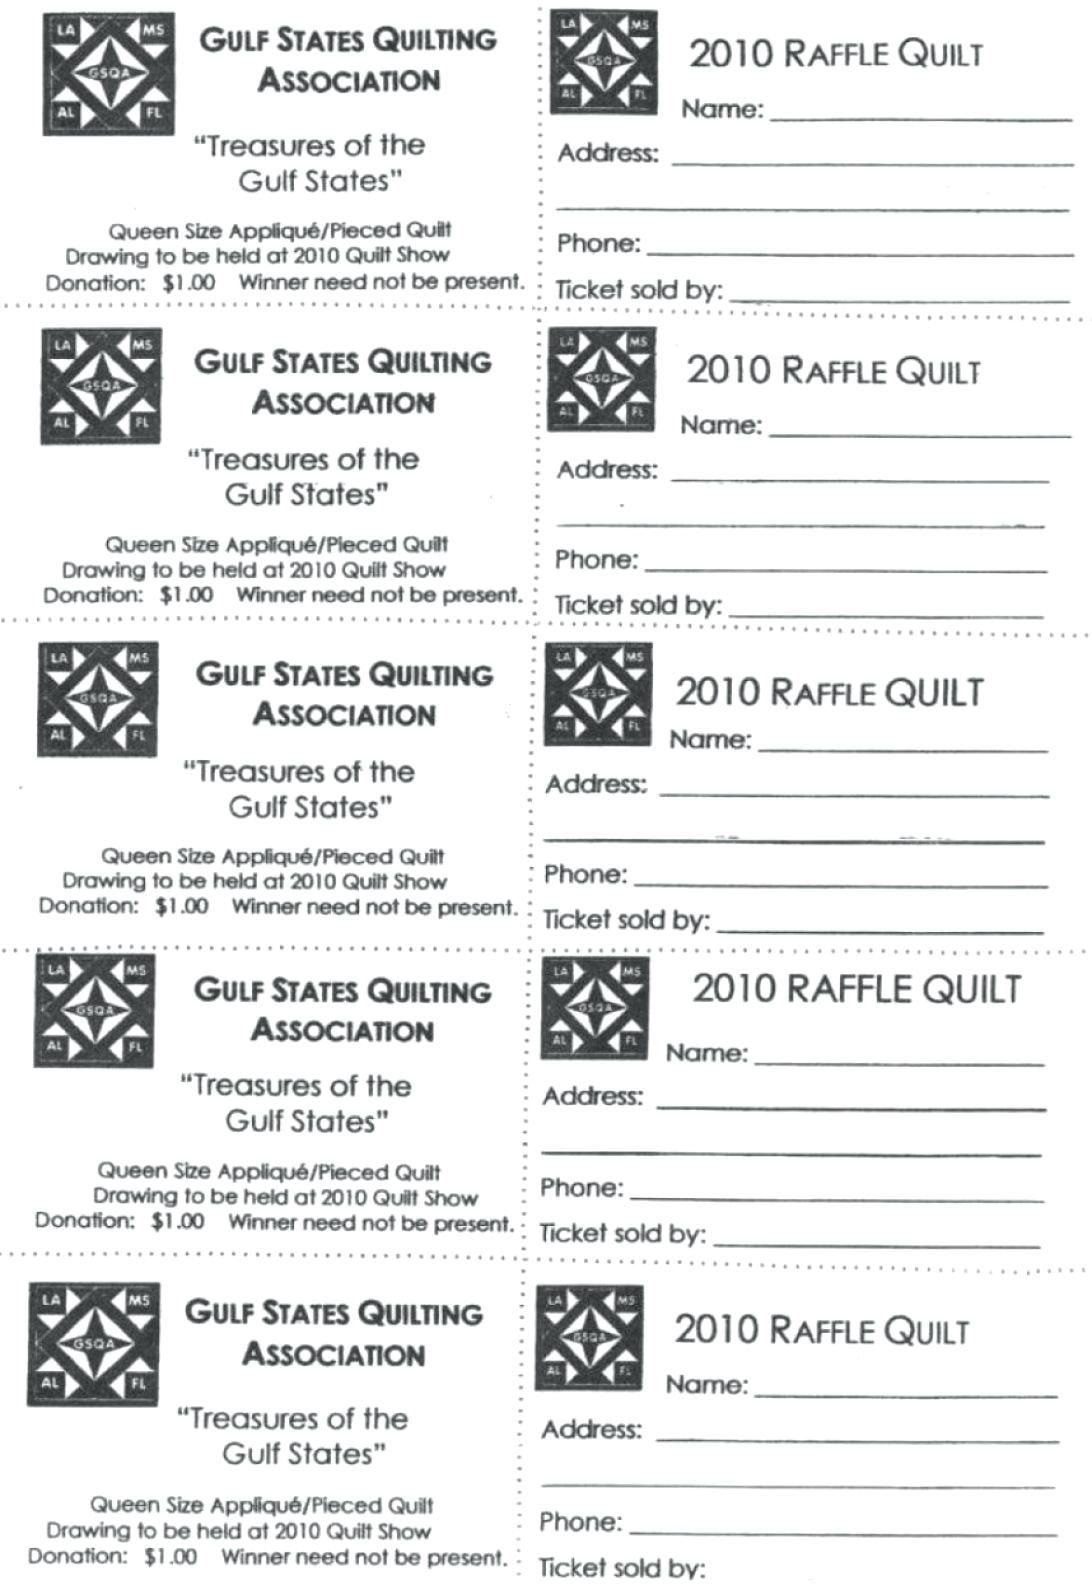 006 Outstanding Raffle Ticket Template Word Photo  8 Per Page FormatFull